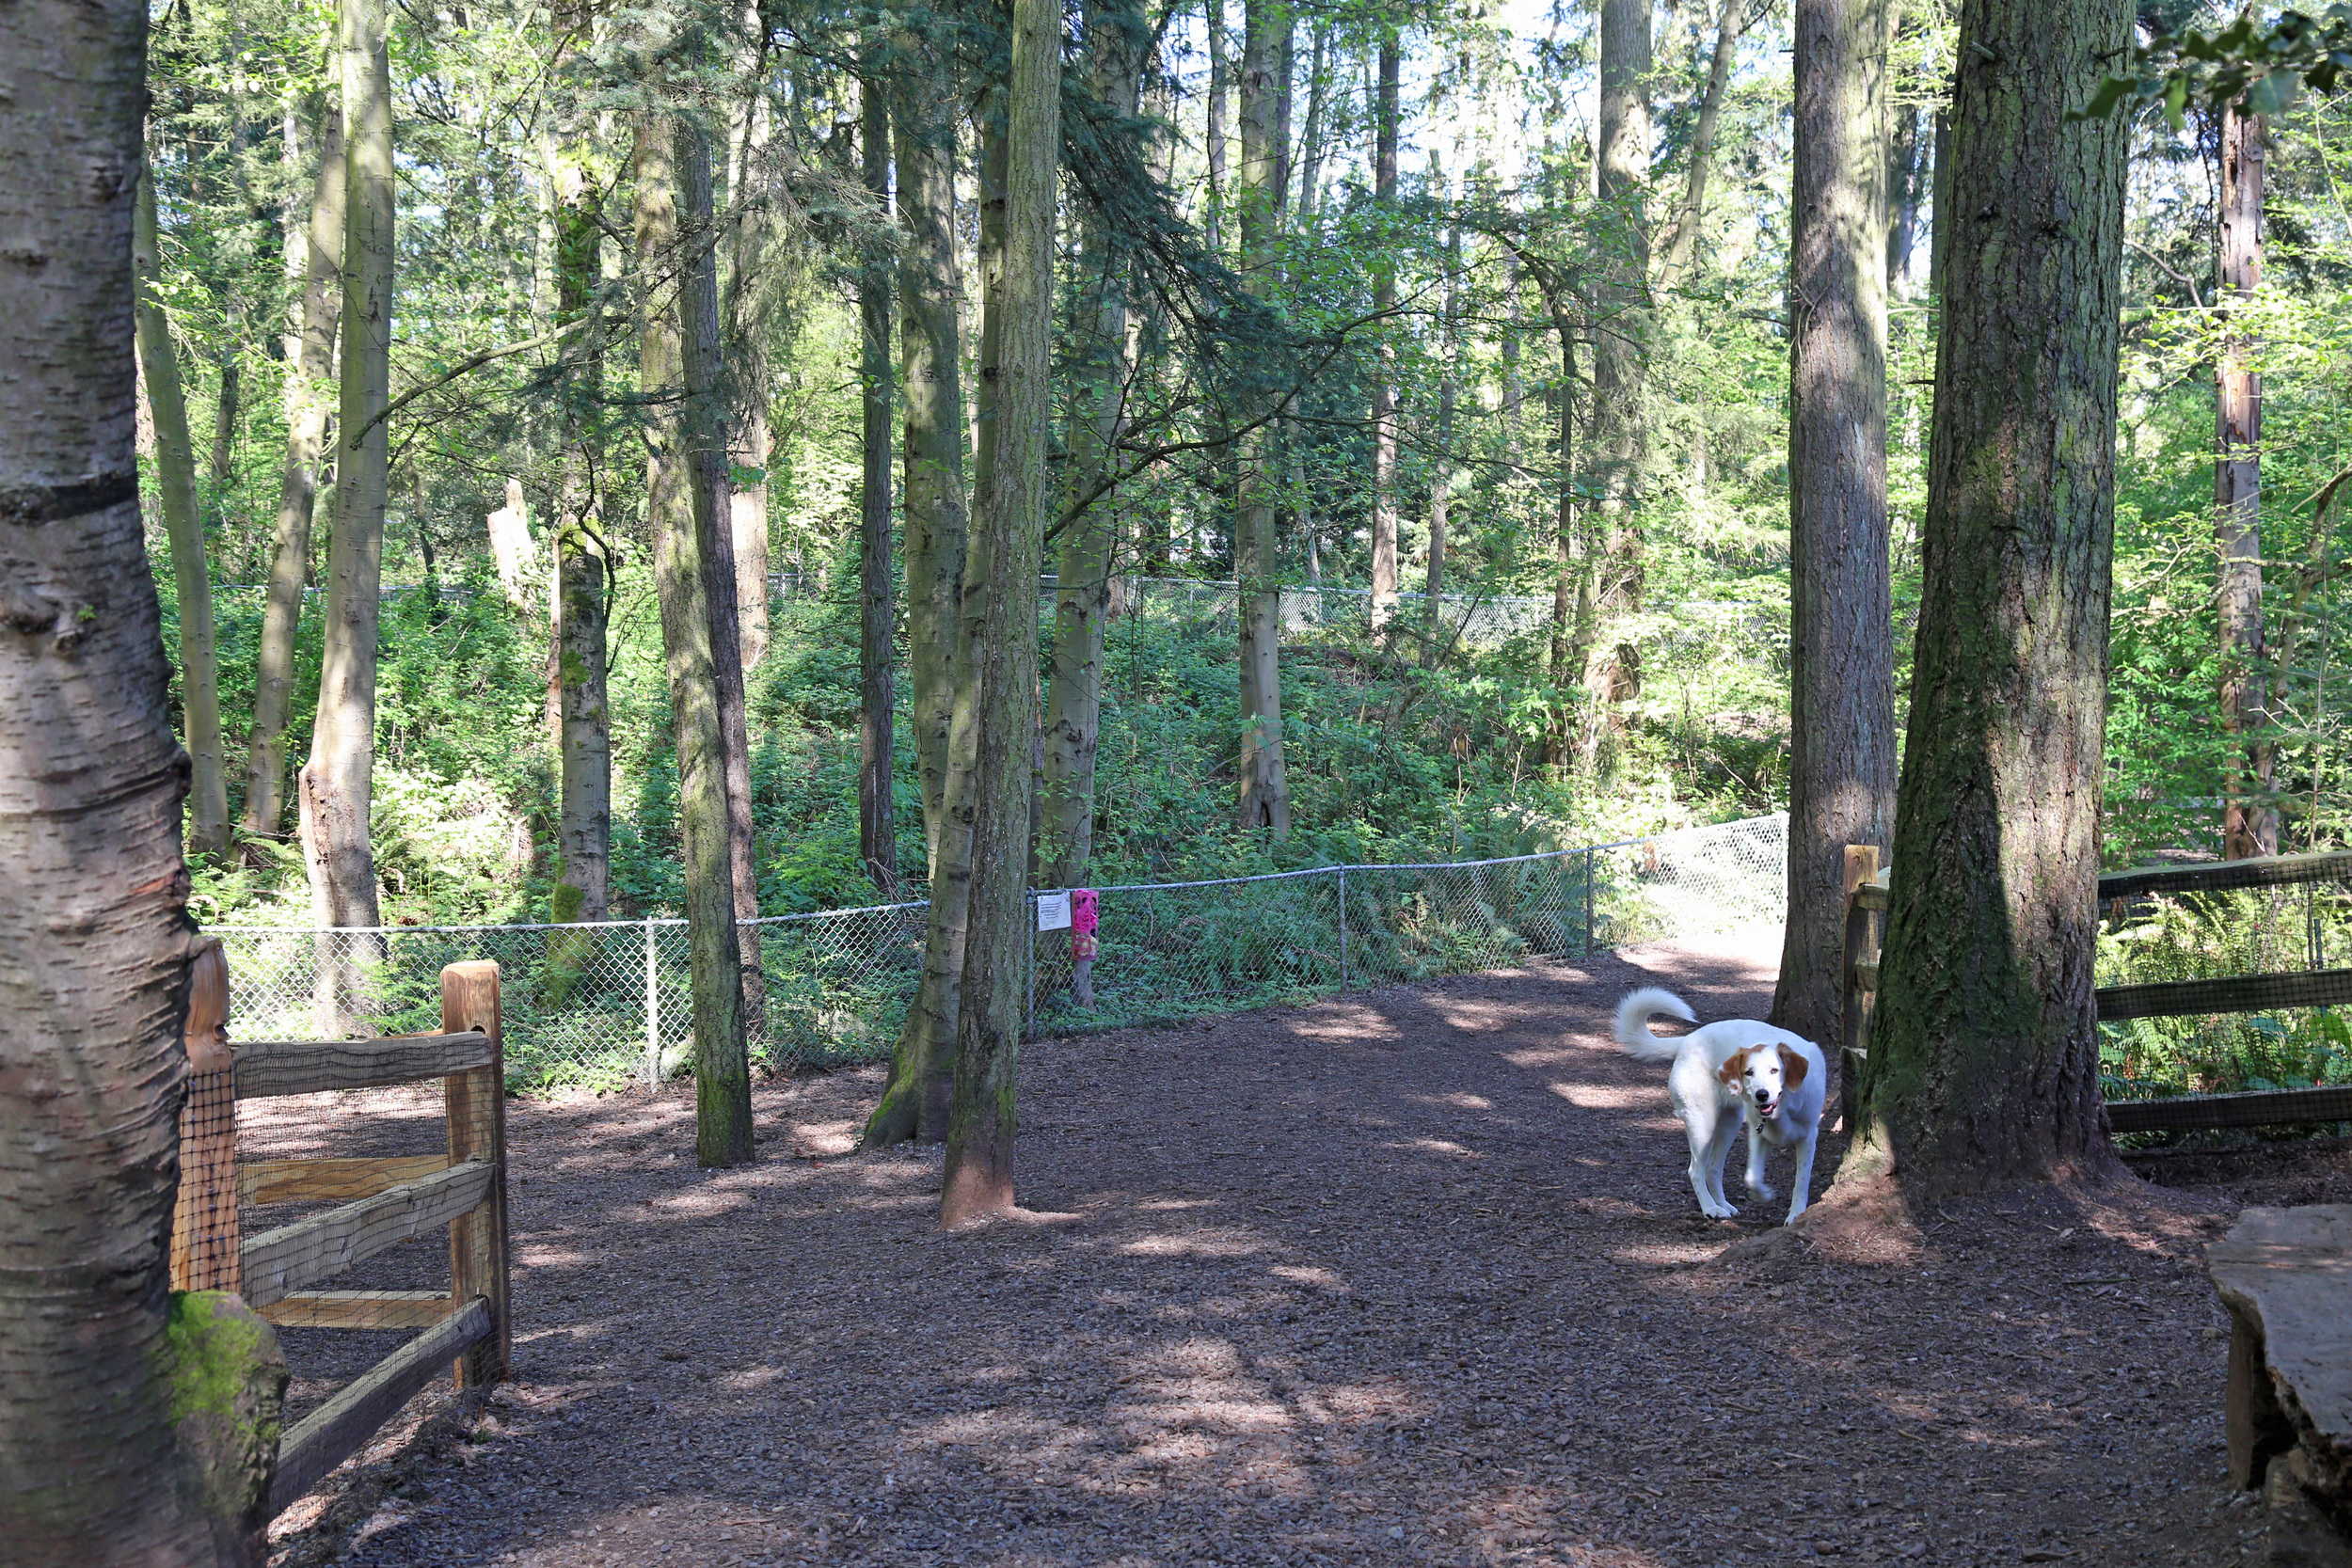 North Acres dog park is full of trees and trails.